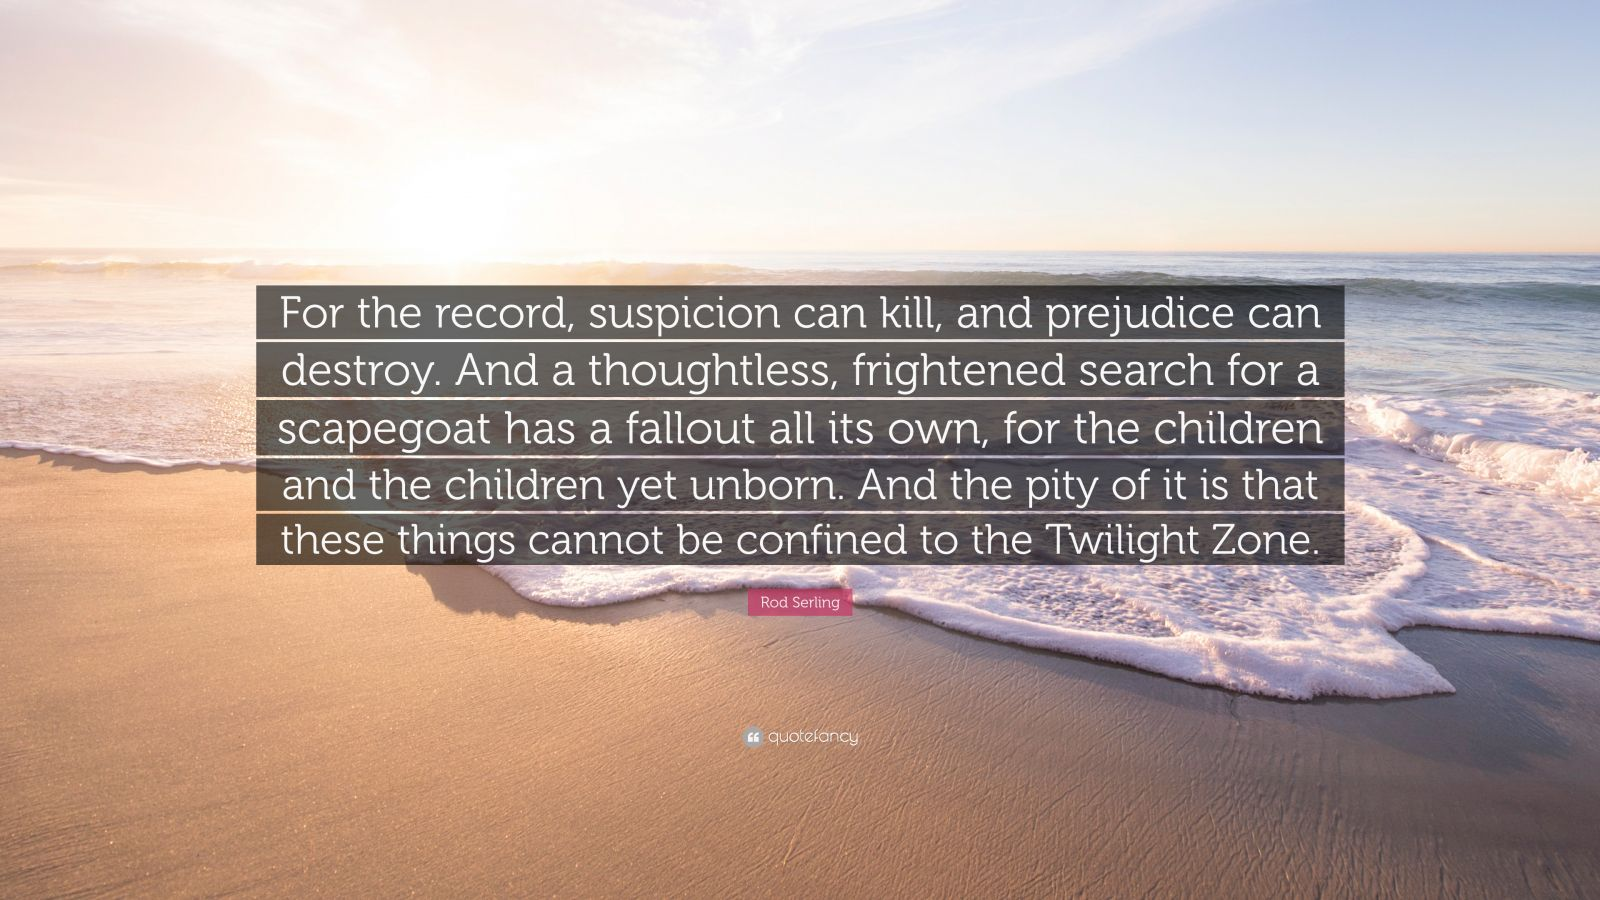 """Rod Serling Quote: """"For the record, suspicion can kill, and prejudice can destroy. And a thoughtless, frightened search for a scapegoat has a fallout all its own, for the children and the children yet unborn. And the pity of it is that these things cannot be confined to the Twilight Zone."""""""